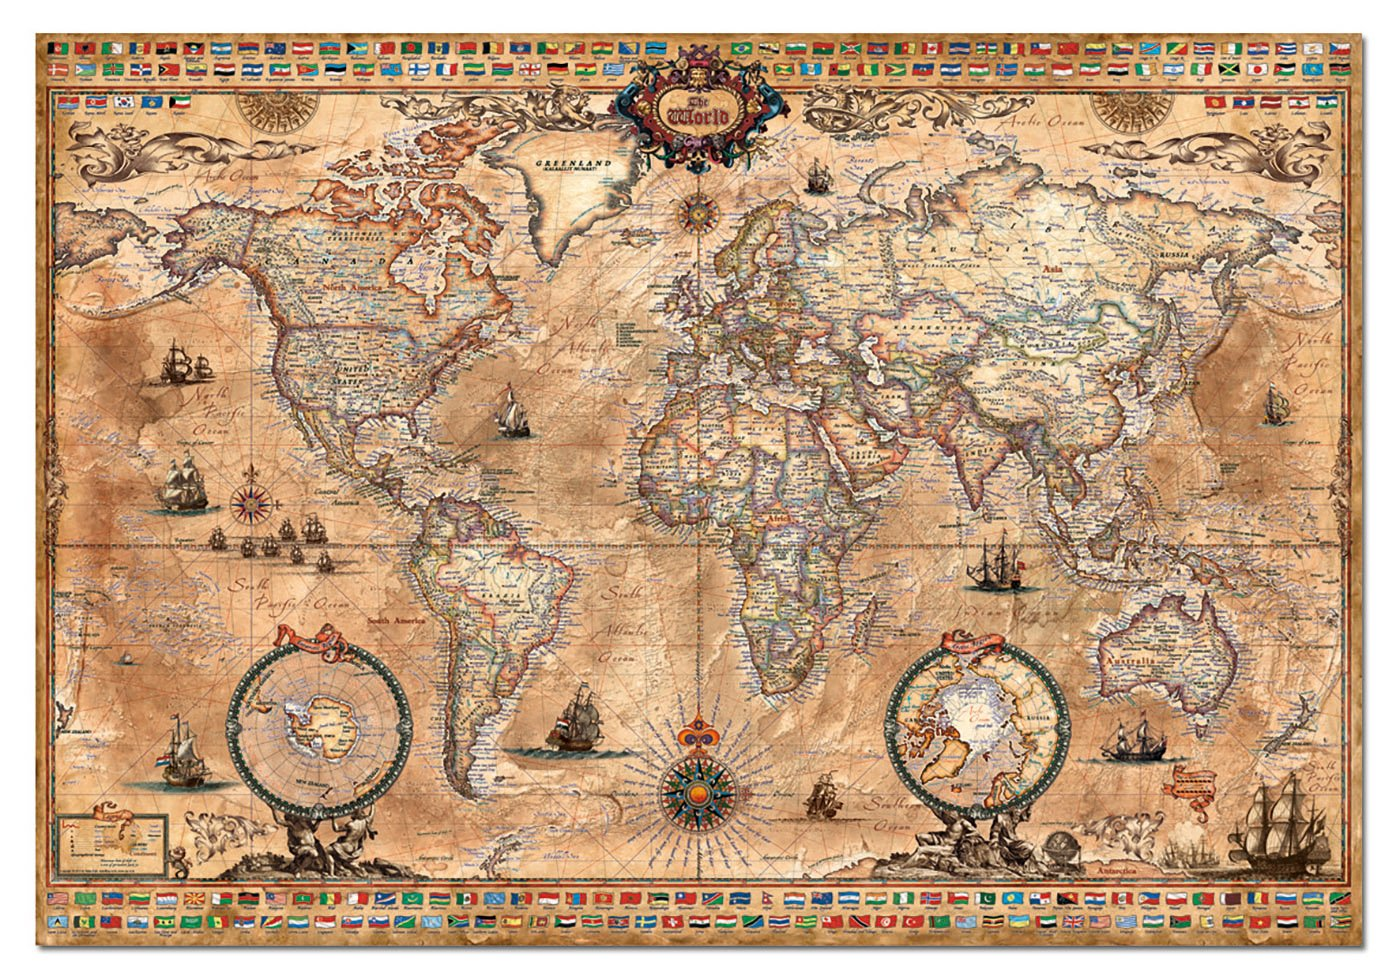 Old world map jigsaw puzzle jigsaw puzzles for adults if you are looking for a challenging old world map jigsaw puzzle that is really beautiful when completed this 1000 piece antique world map by educa might be gumiabroncs